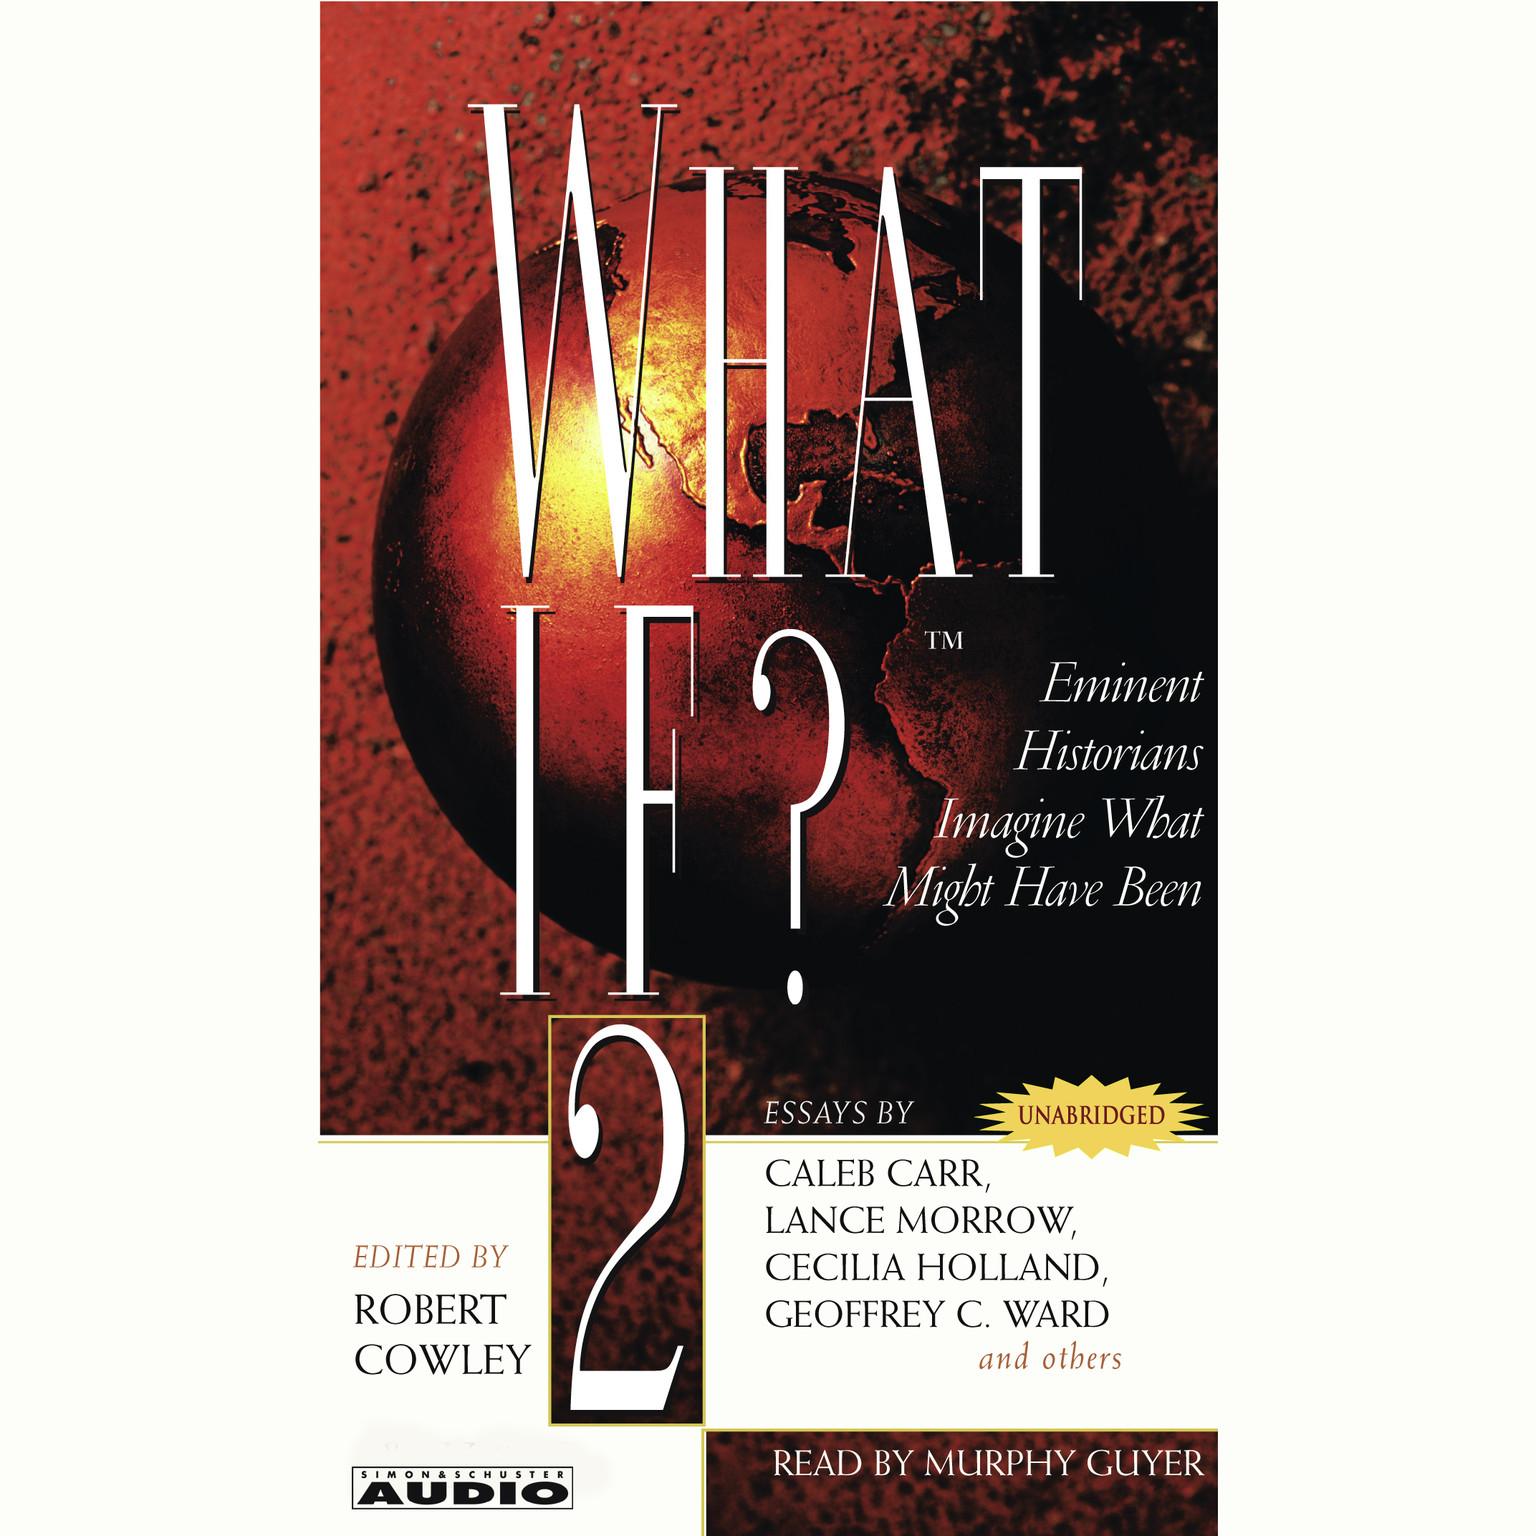 Printable What If...? Vol 2: Eminent Historians Imagine What Might Have Been Audiobook Cover Art